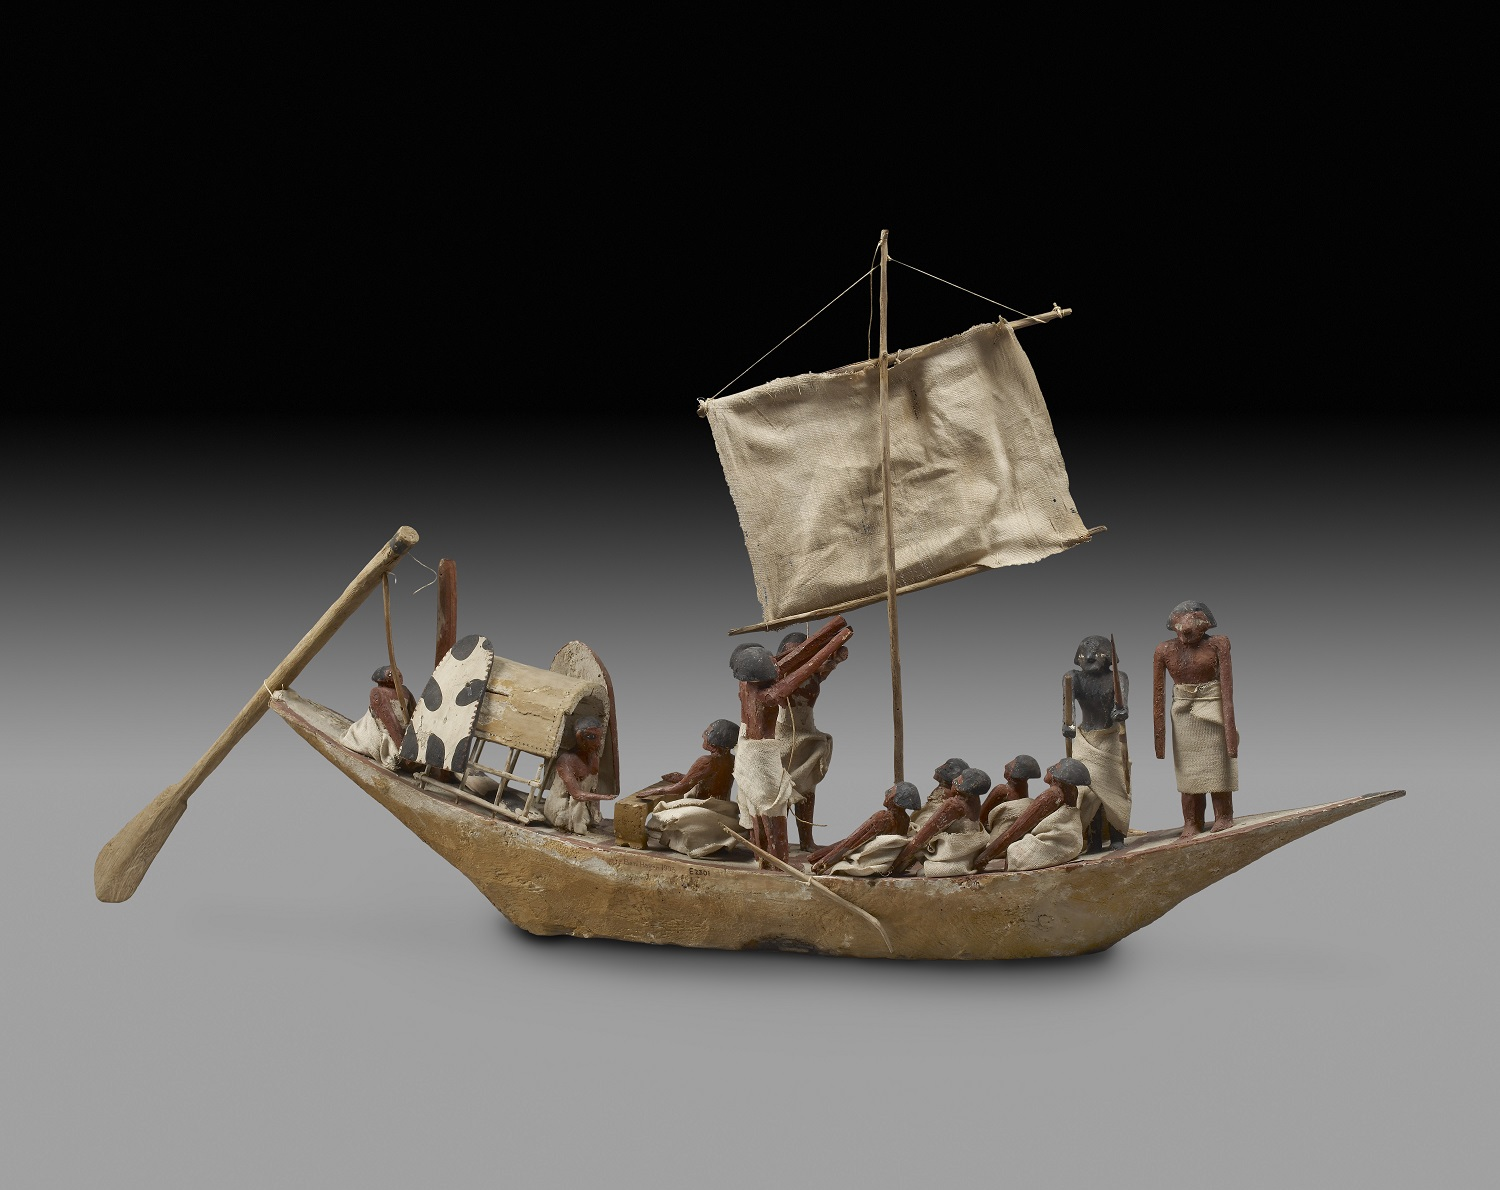 Model of a War Boat. From the Tomb of Nefwa at Beni Hasan, Egypt. IXth - XIth Dynasty (c. 2125 - c. 1940 BC). Note, two sailors are sitting at a table playing the game of Men, which can be indetified by vertical lines going across the gaming board. Ashmolean Museum, E2301.